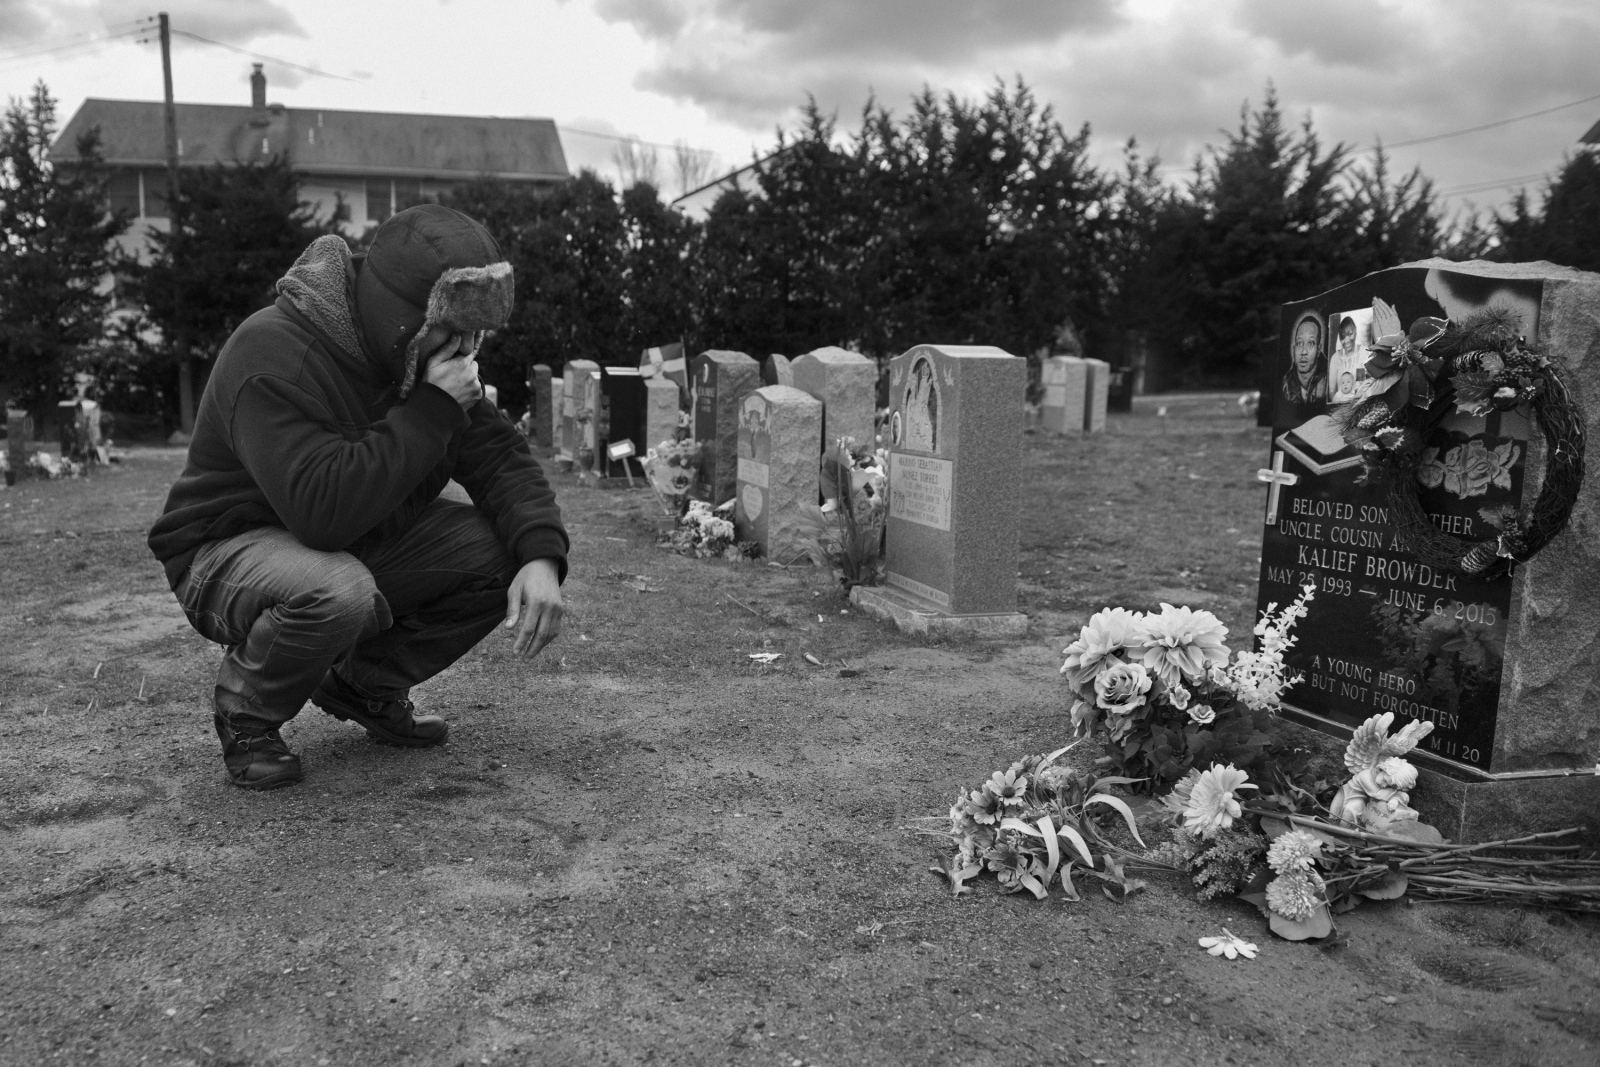 Akeem Browder visits the grave of his brother Kalief and of his mother, Venida Browder, who died on October 14th 2016 from a heart attack. Venida was emotionally devasted after Kalief took his own life. She championed the cause of reforming the criminal justice system and made her case known nationwide after asking answers in several tv shows and criminal justice forums.